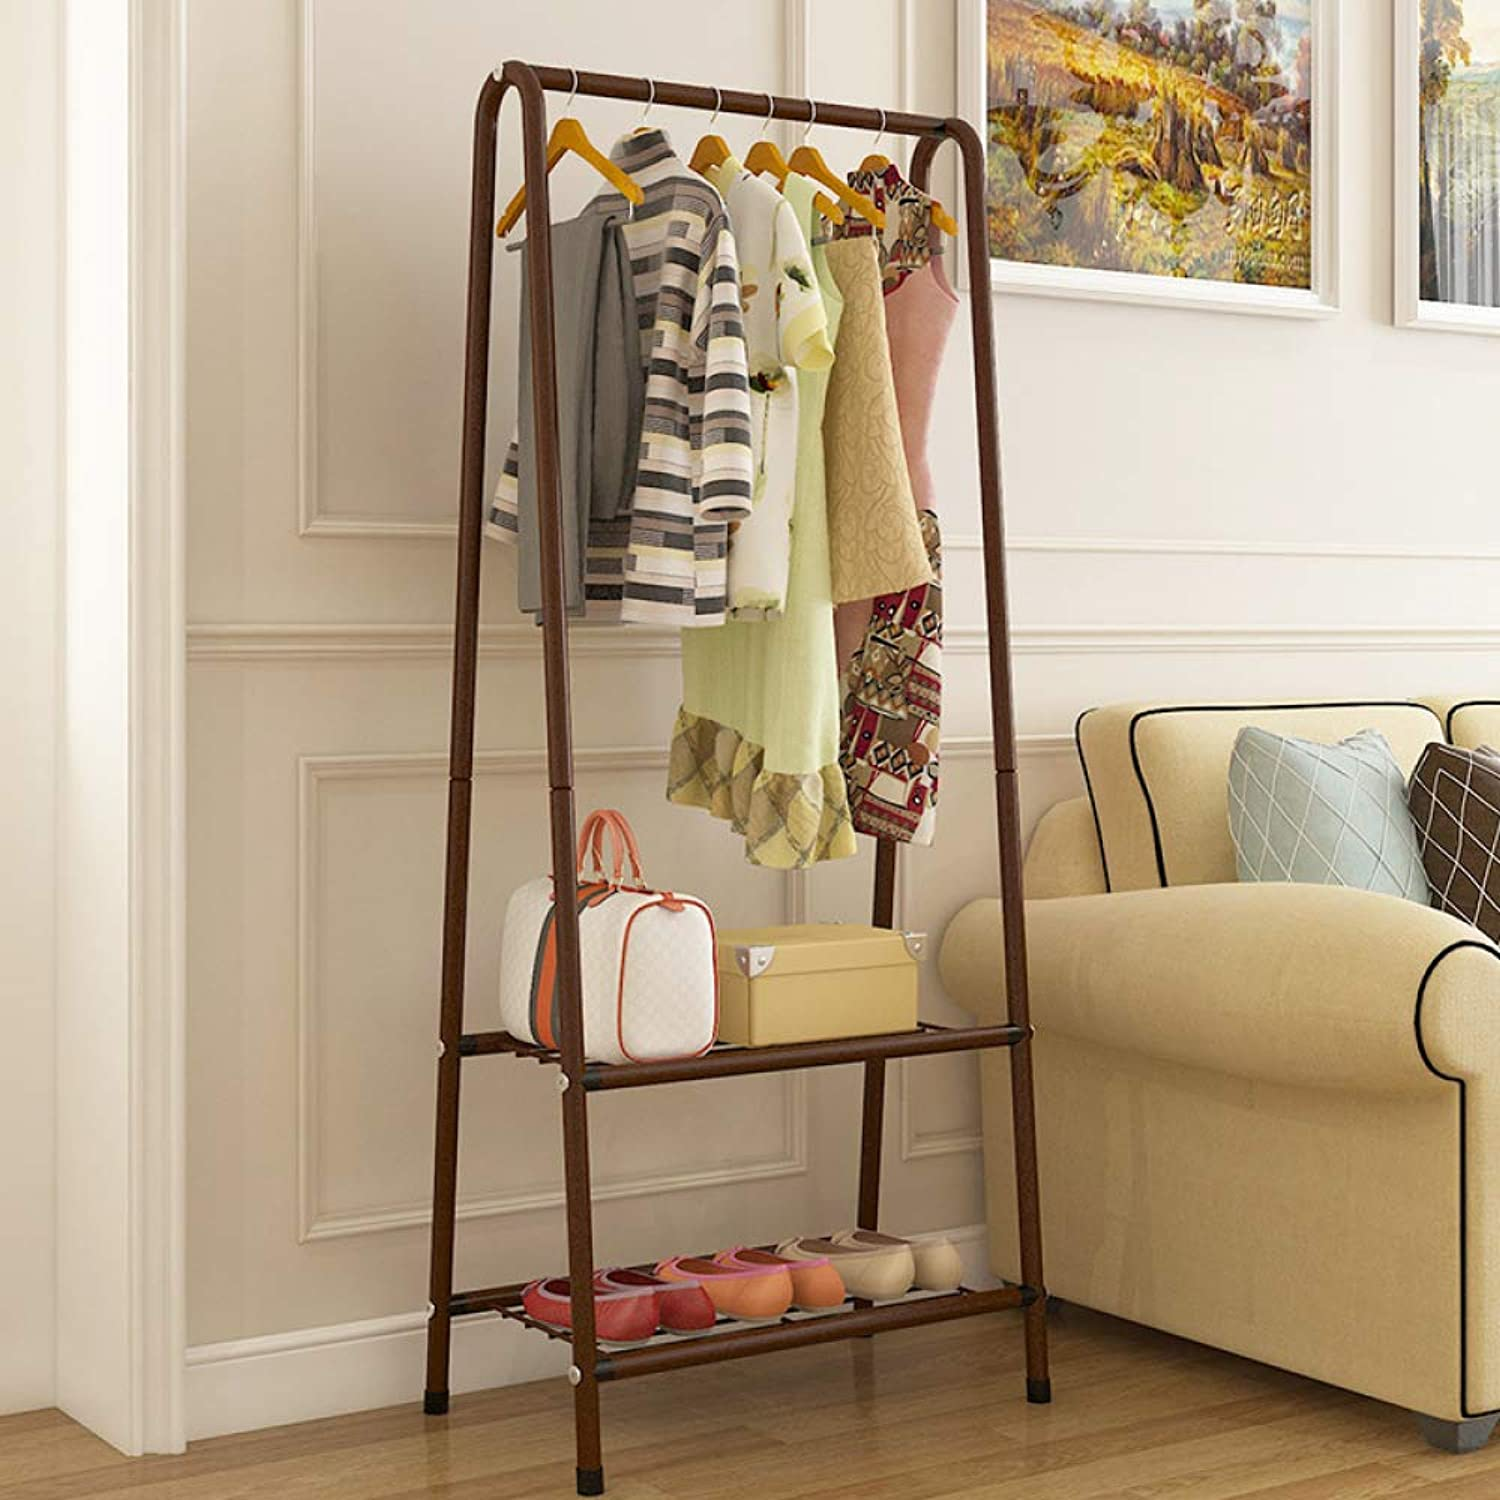 Coat Rack Bedroom Simple Living Room Clothes Rack,Brown-60.2  35.8  151cm